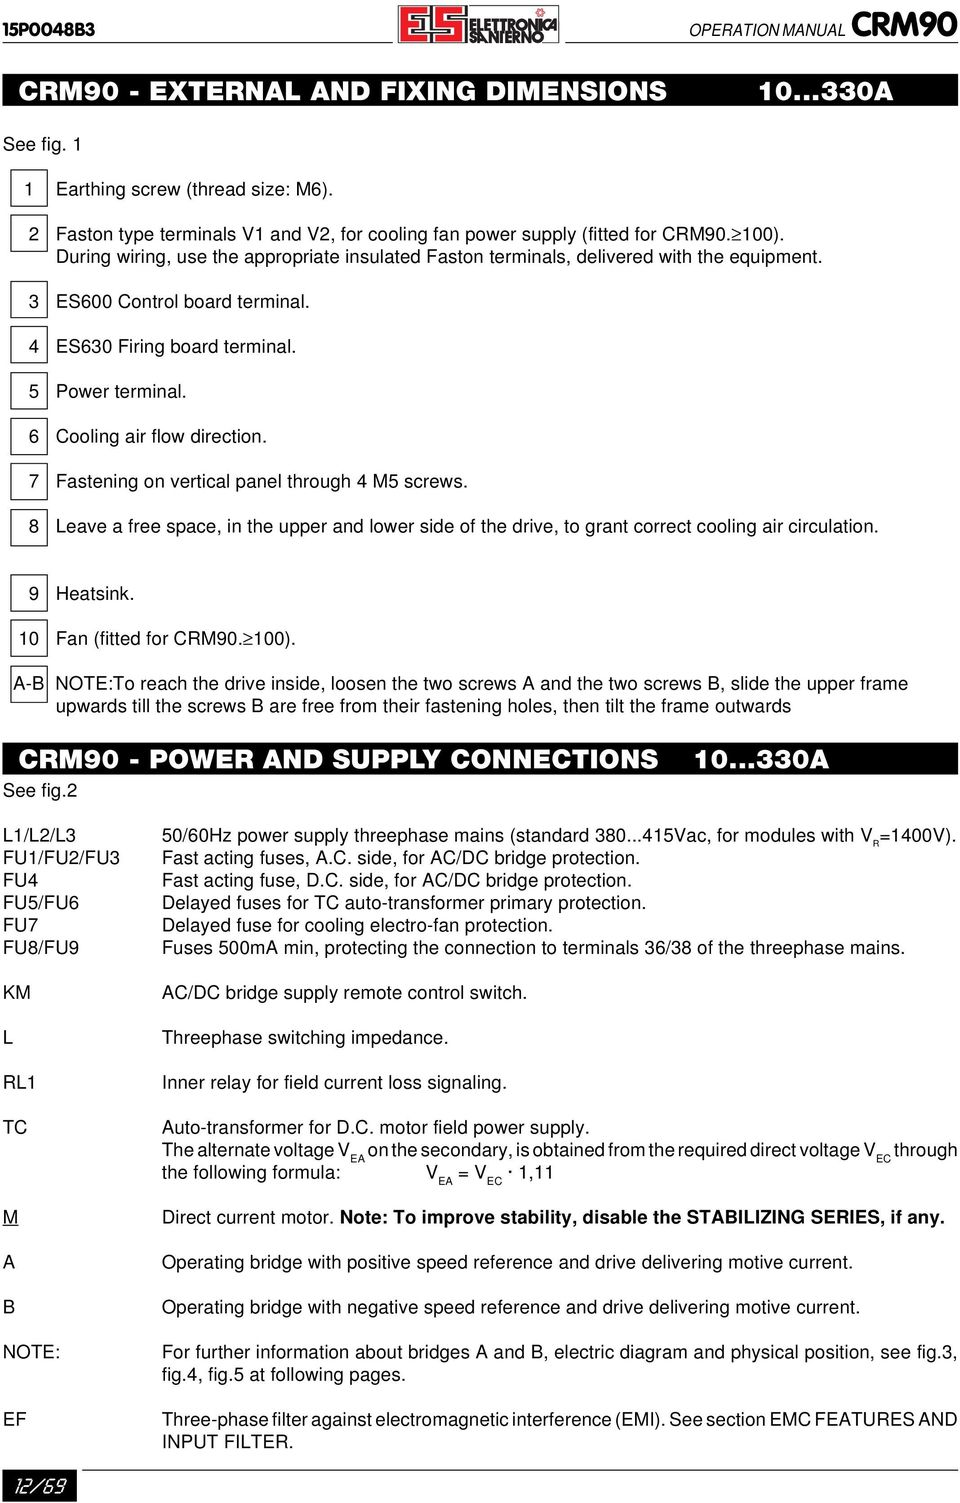 Application Manual English Pdf 3w Led Driver Aka Corbins Board 3 Es600 Control Terminal 4 Es630 Firing 5 Power